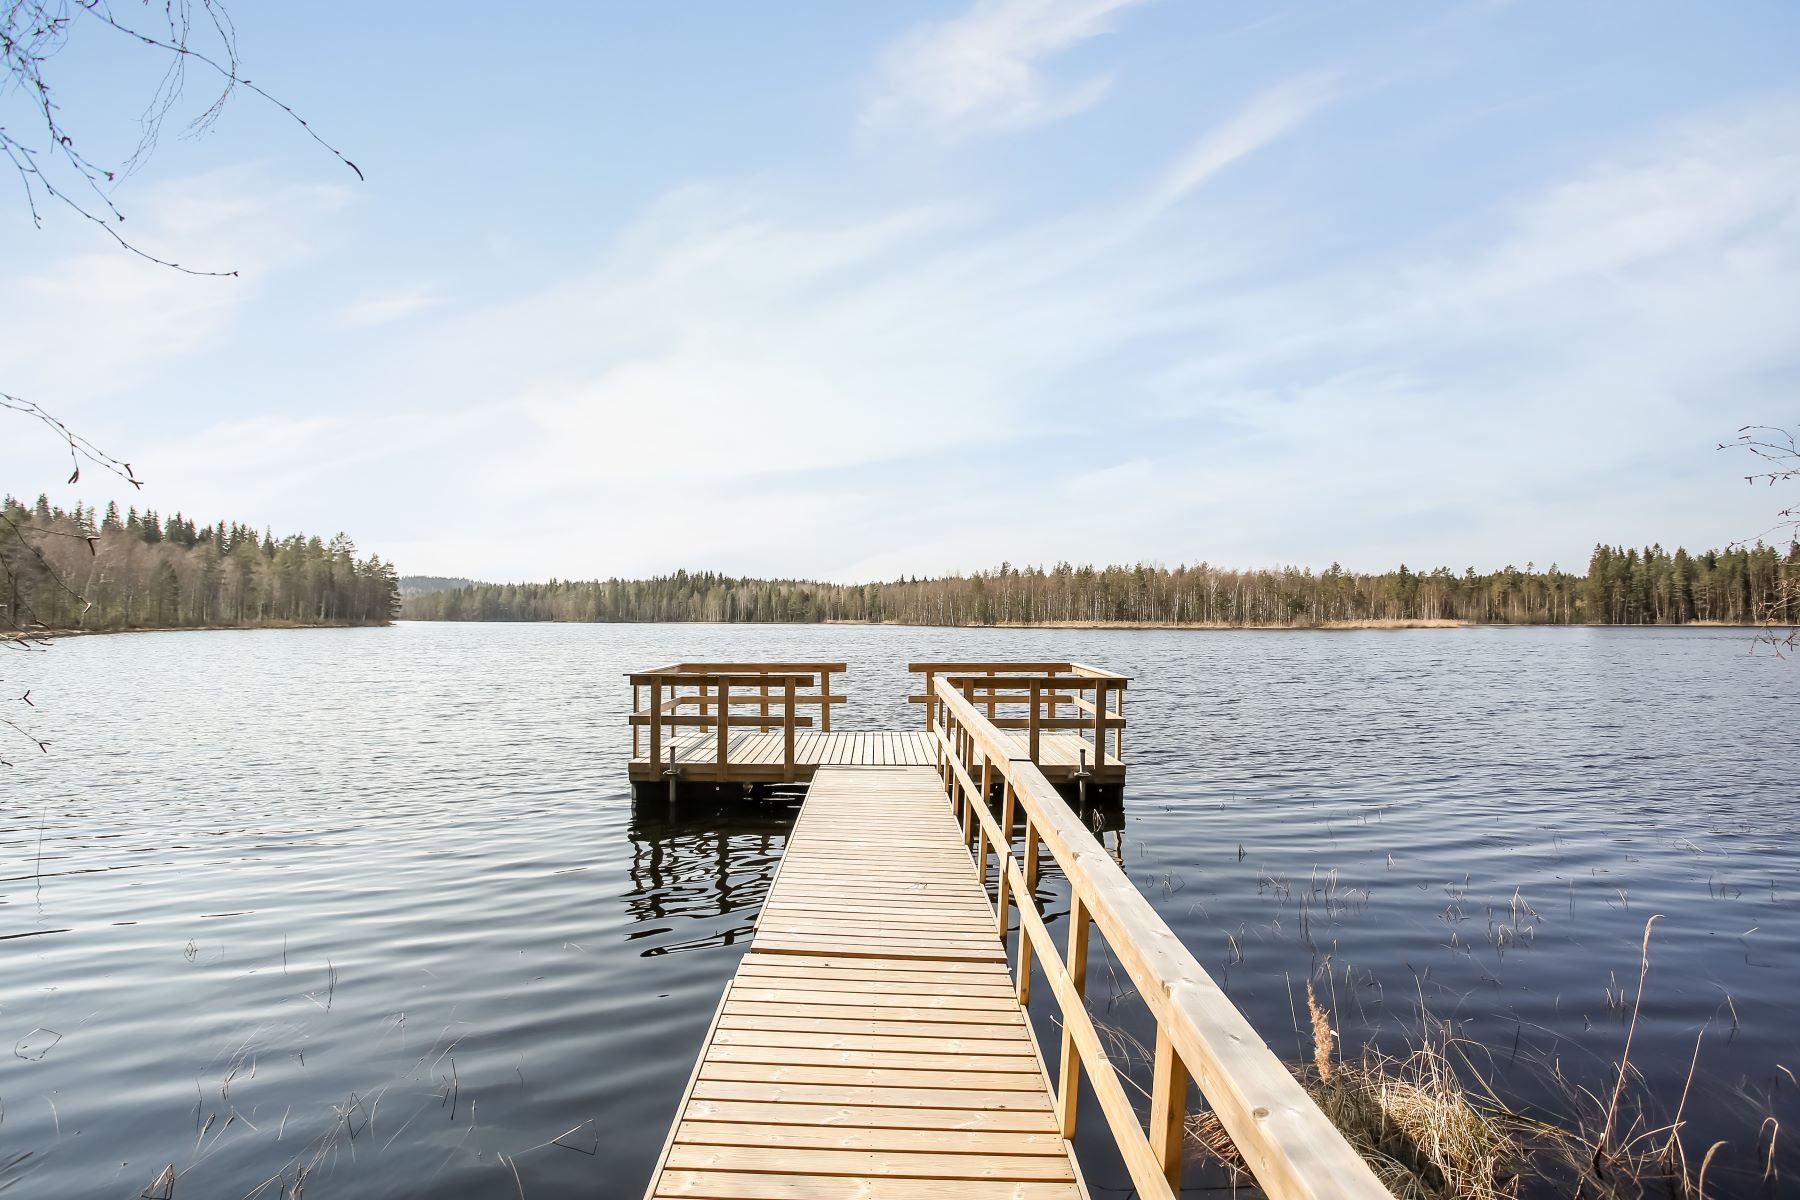 Single Family Homes for Sale at Hirvimaki Punalantie 86 Other Cities In Finland, Cities In Finland 17800 Finland